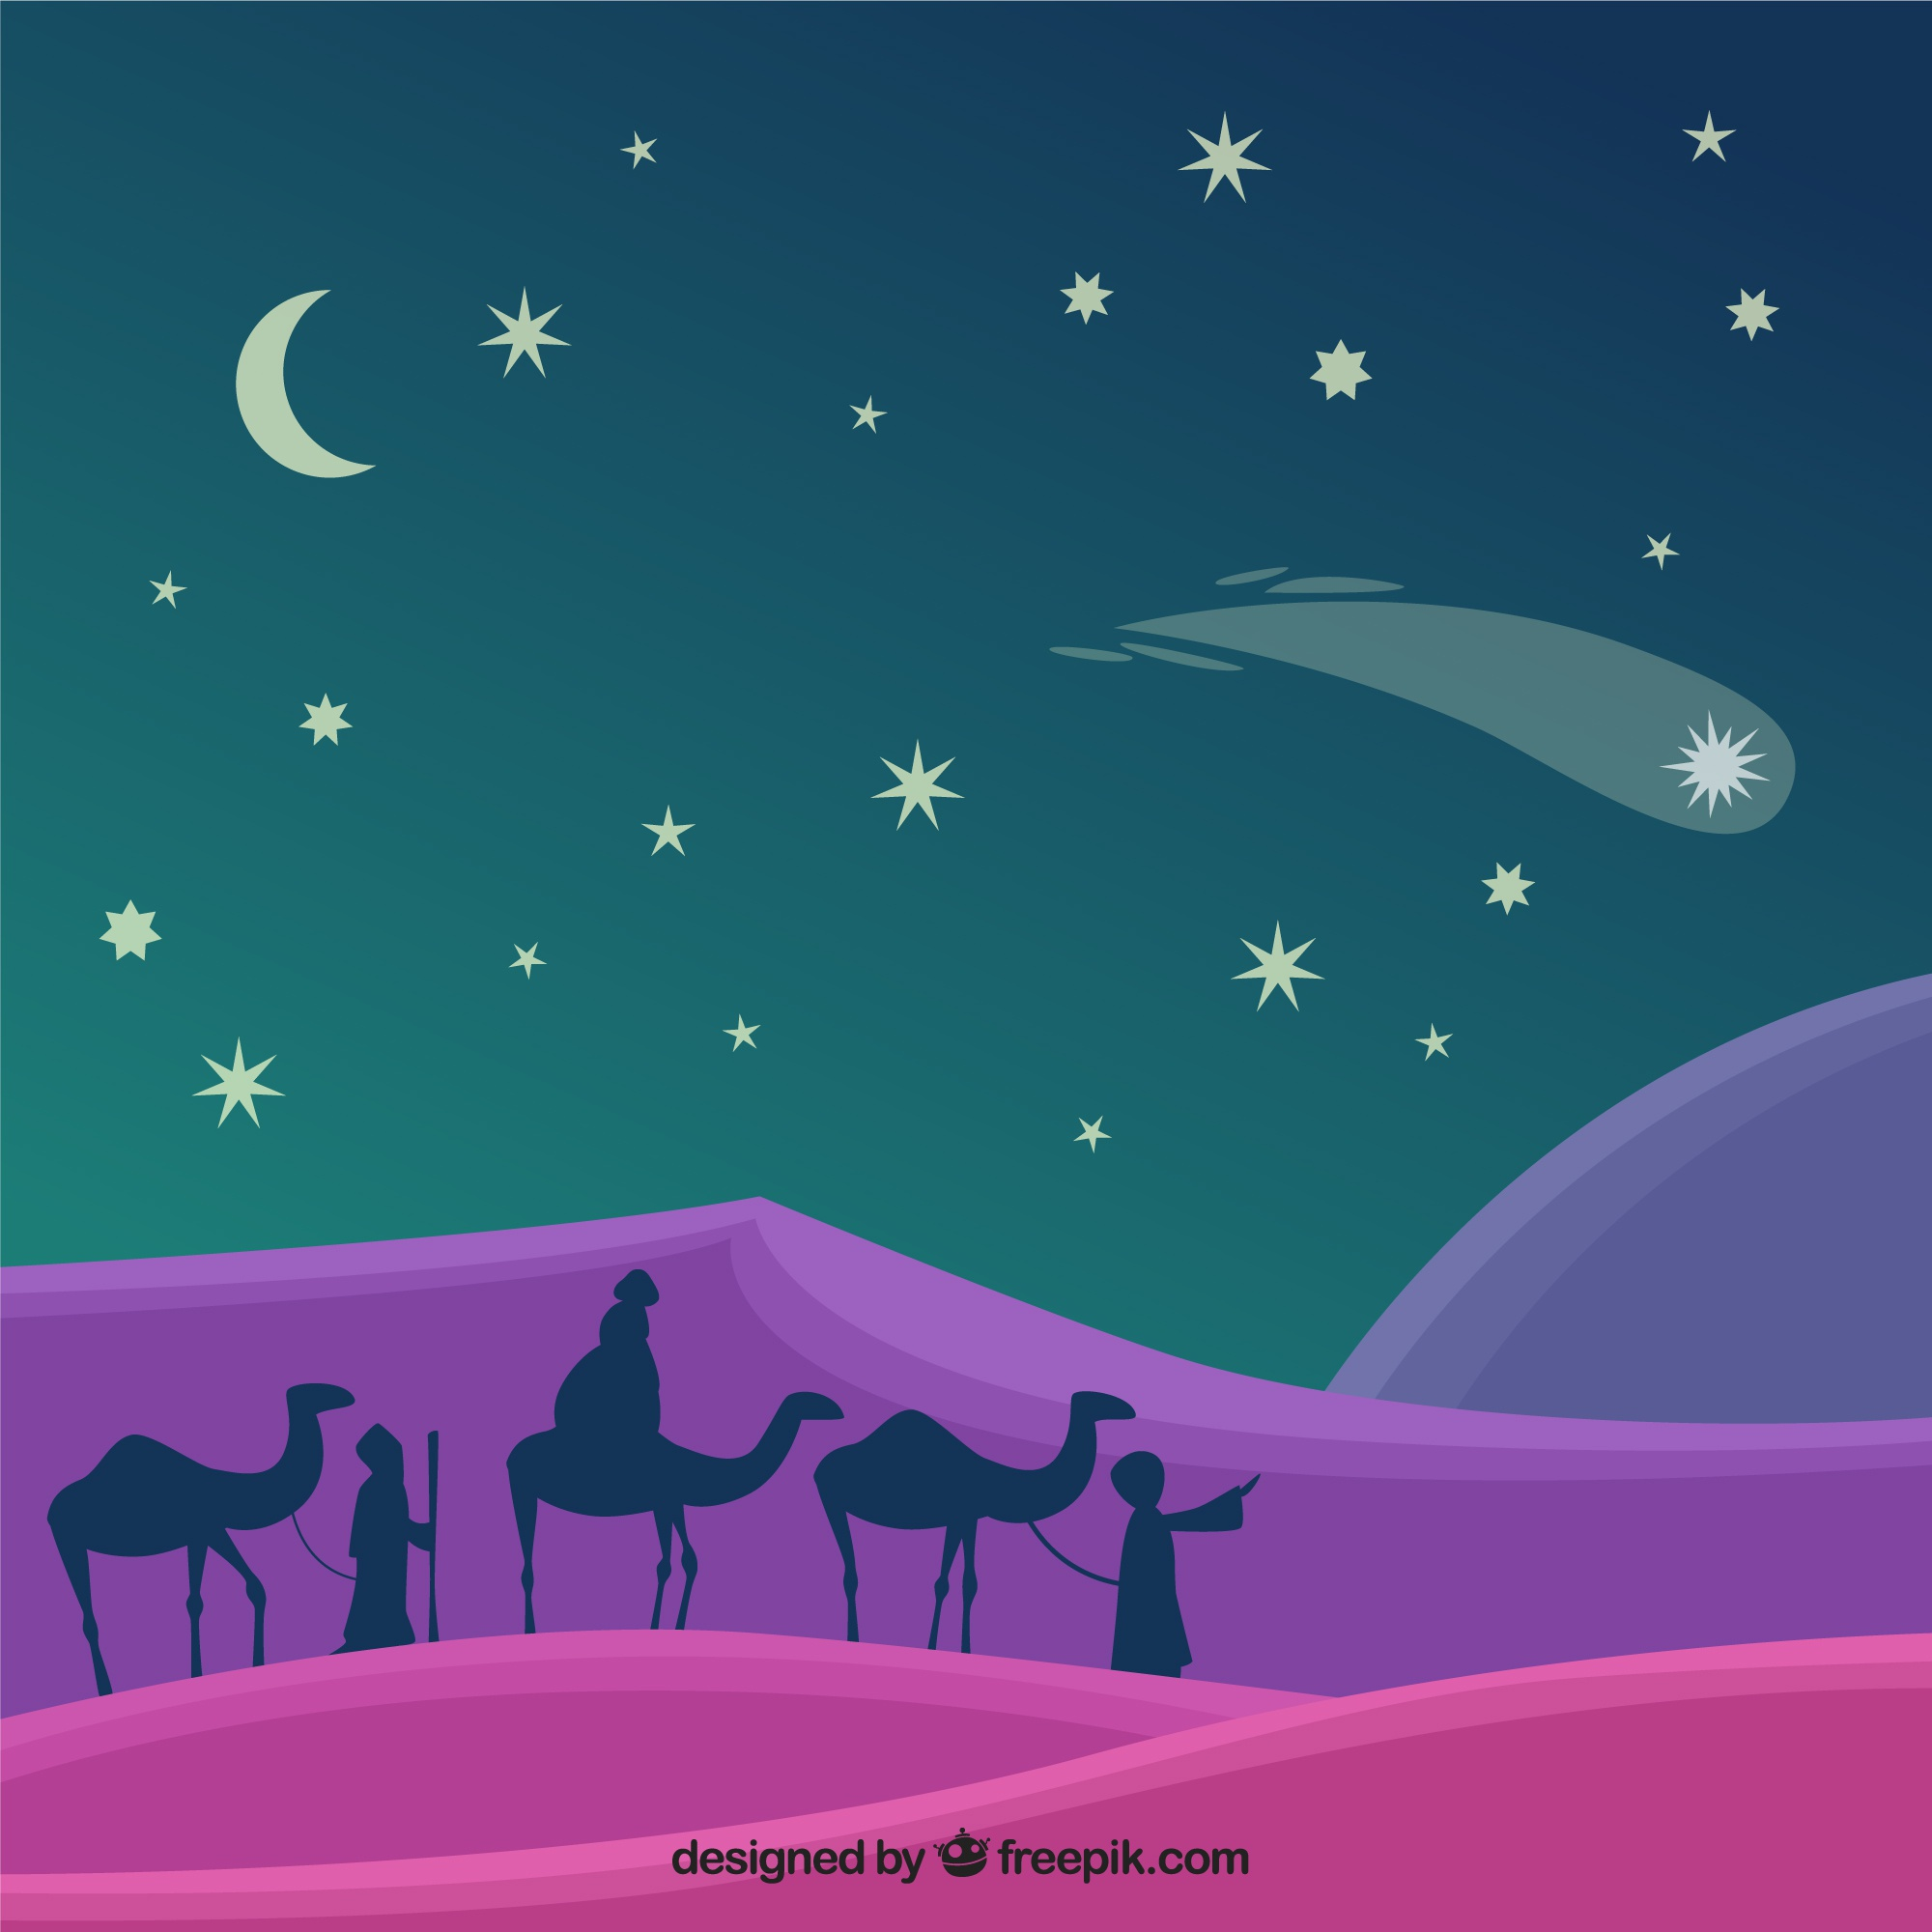 Christmas background with the silhouettes of the wise men